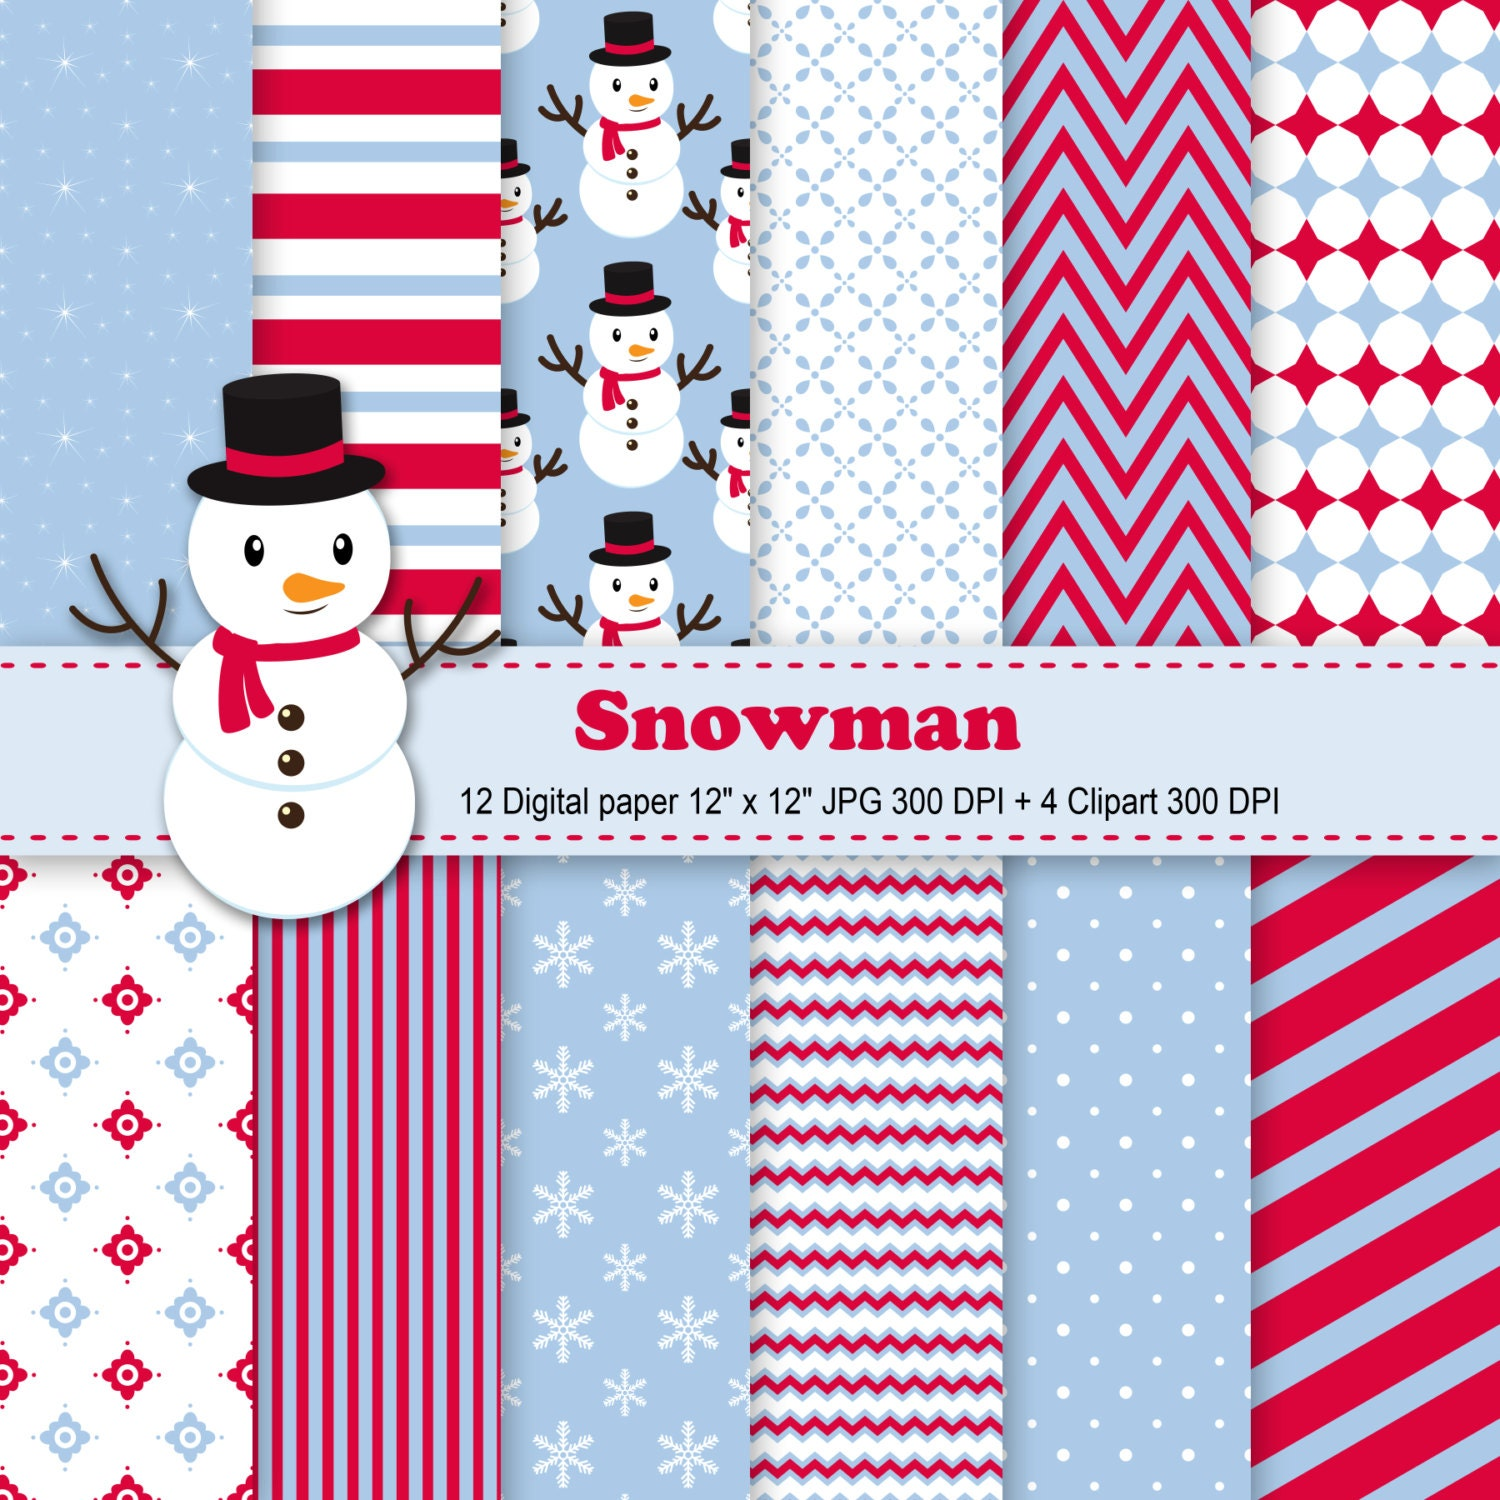 How to scrapbook a holiday - This Is A Digital File